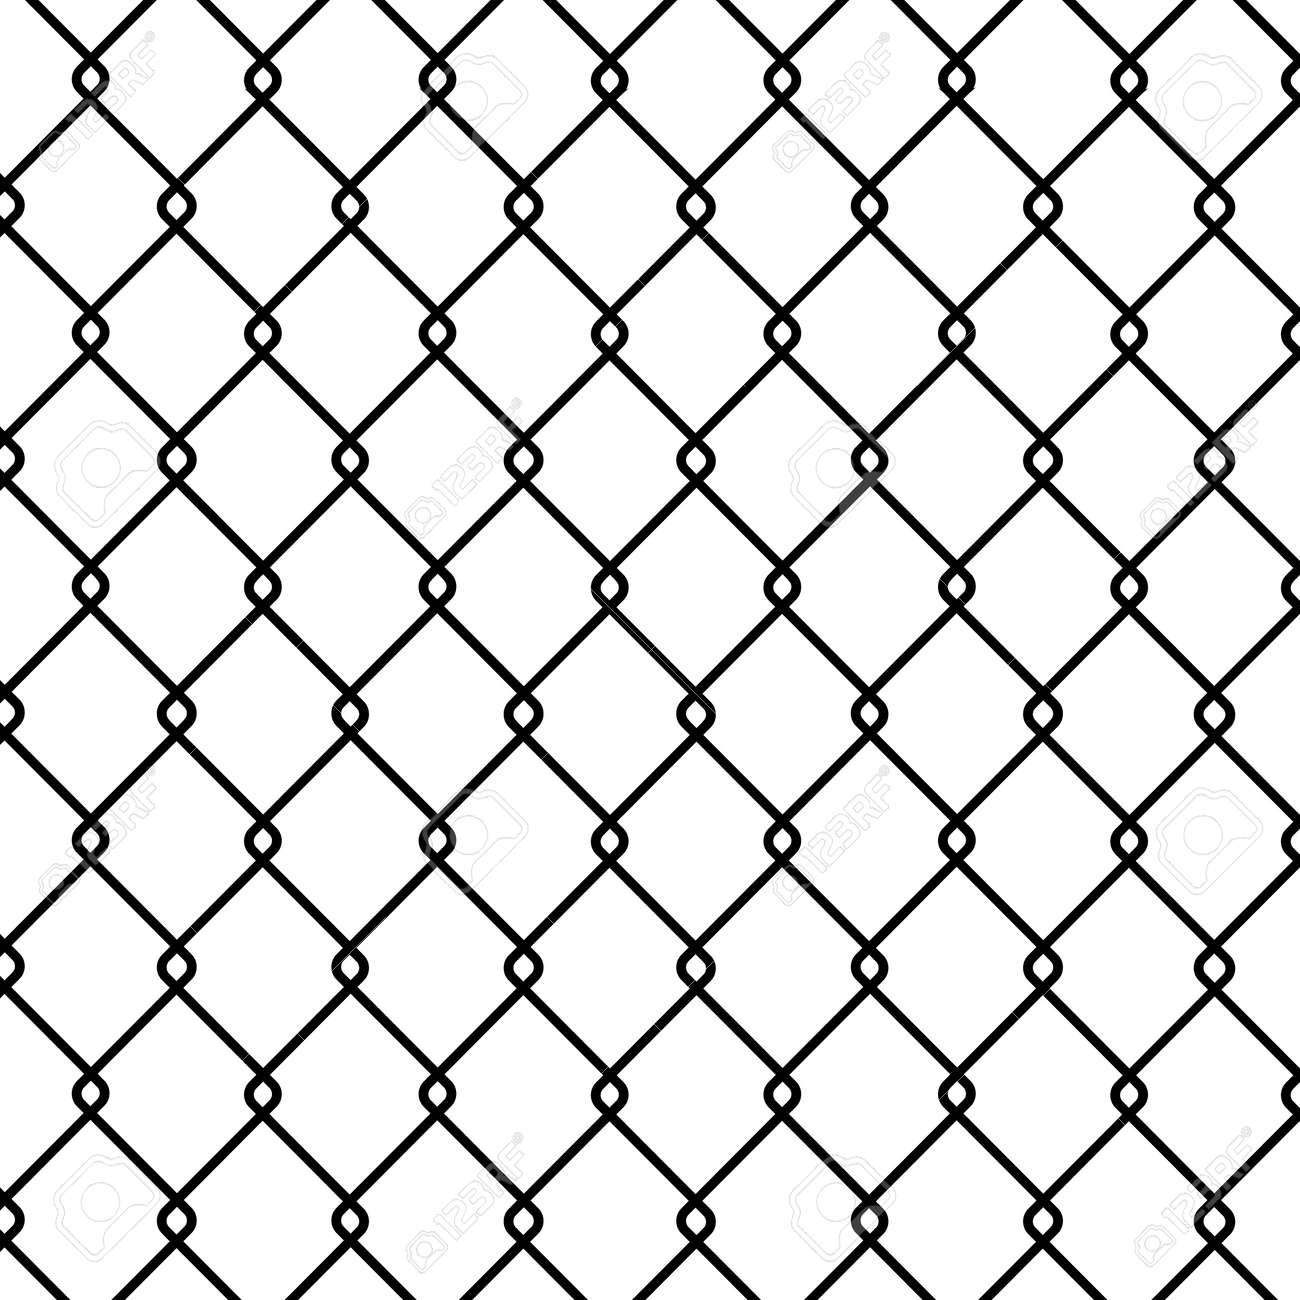 Steel Wire Background Royalty Free Cliparts, Vectors, And Stock ...